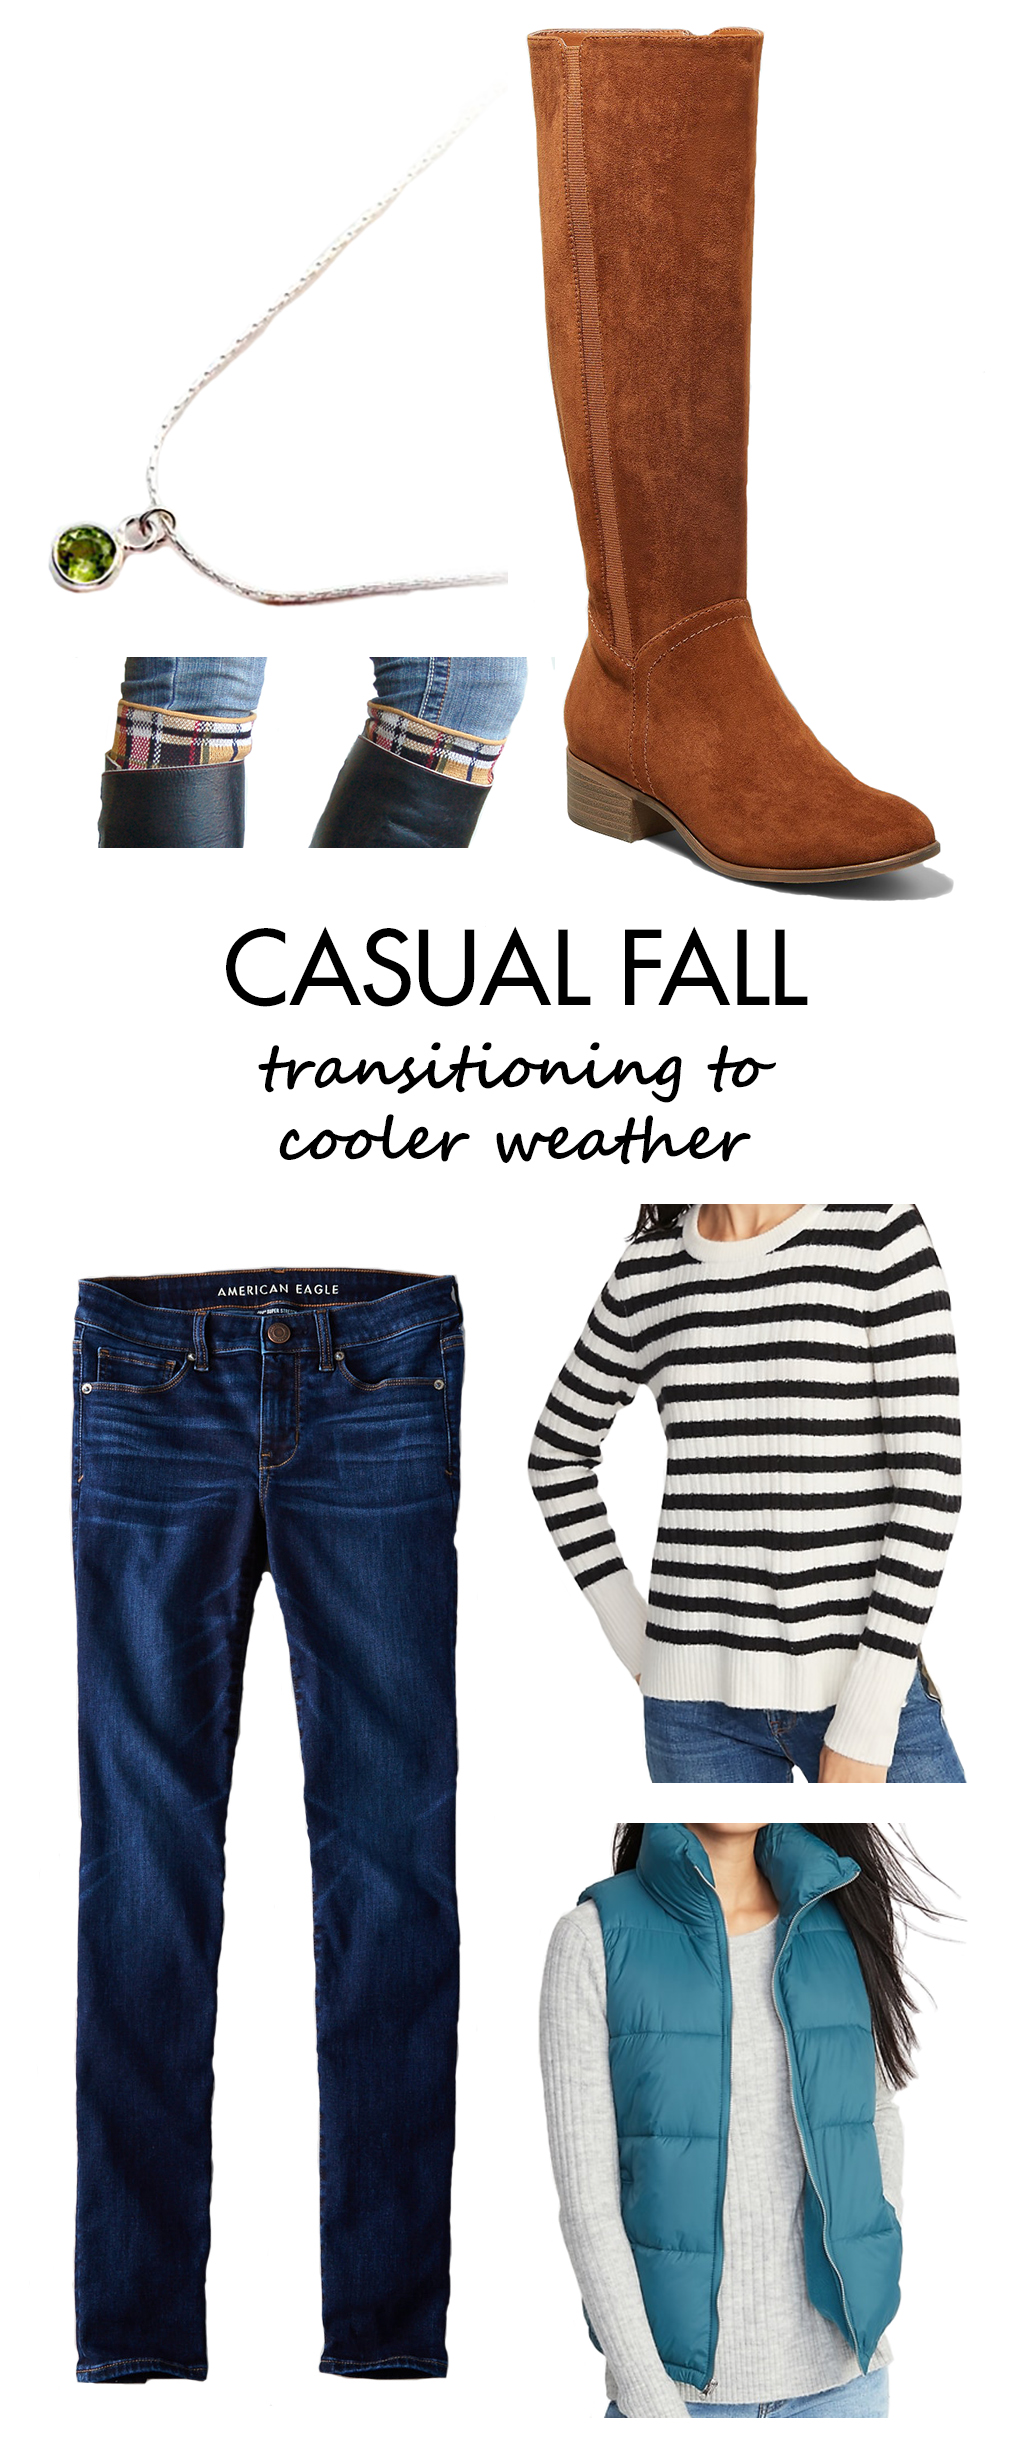 Casual Fall Outfits Inspiration - Transitioning to Cooler Weather | https://www.roseclearfield.com